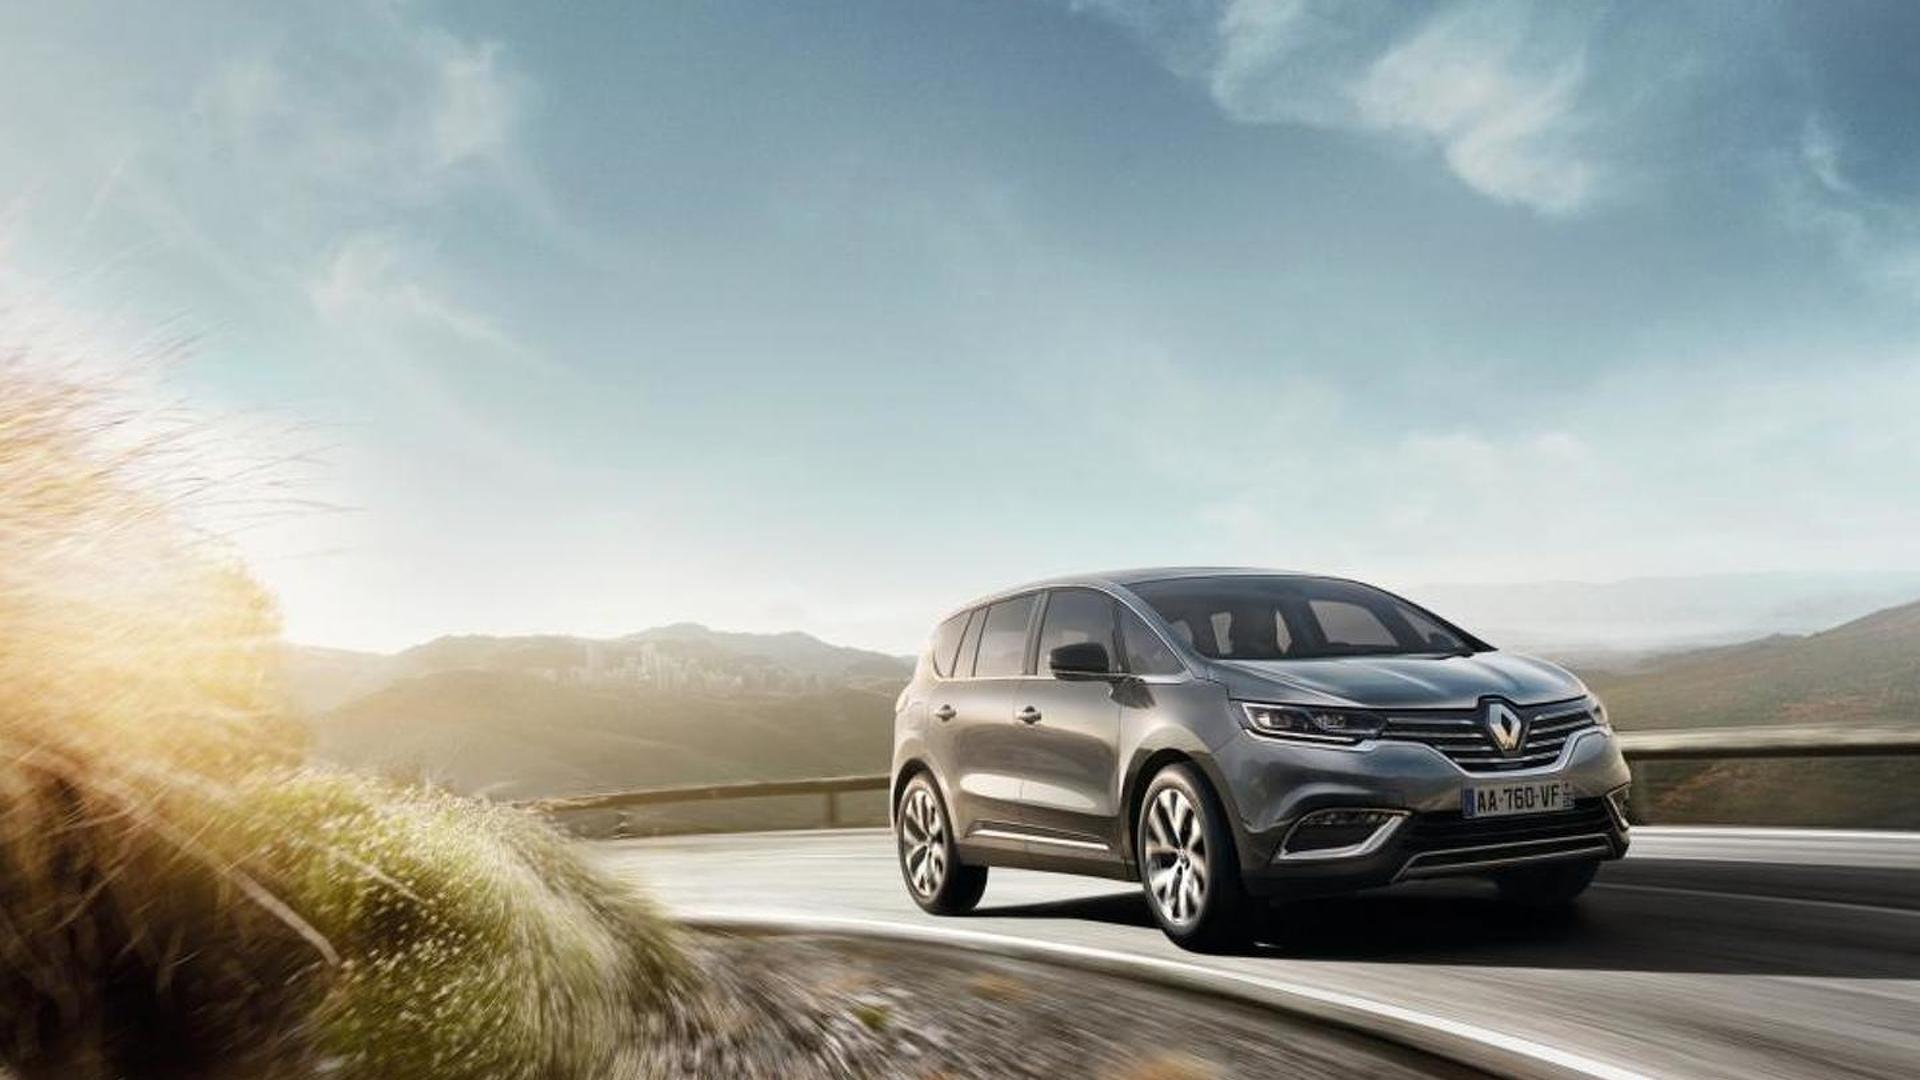 Renault fights back against claims the Espace doesn't comply with emissions standards